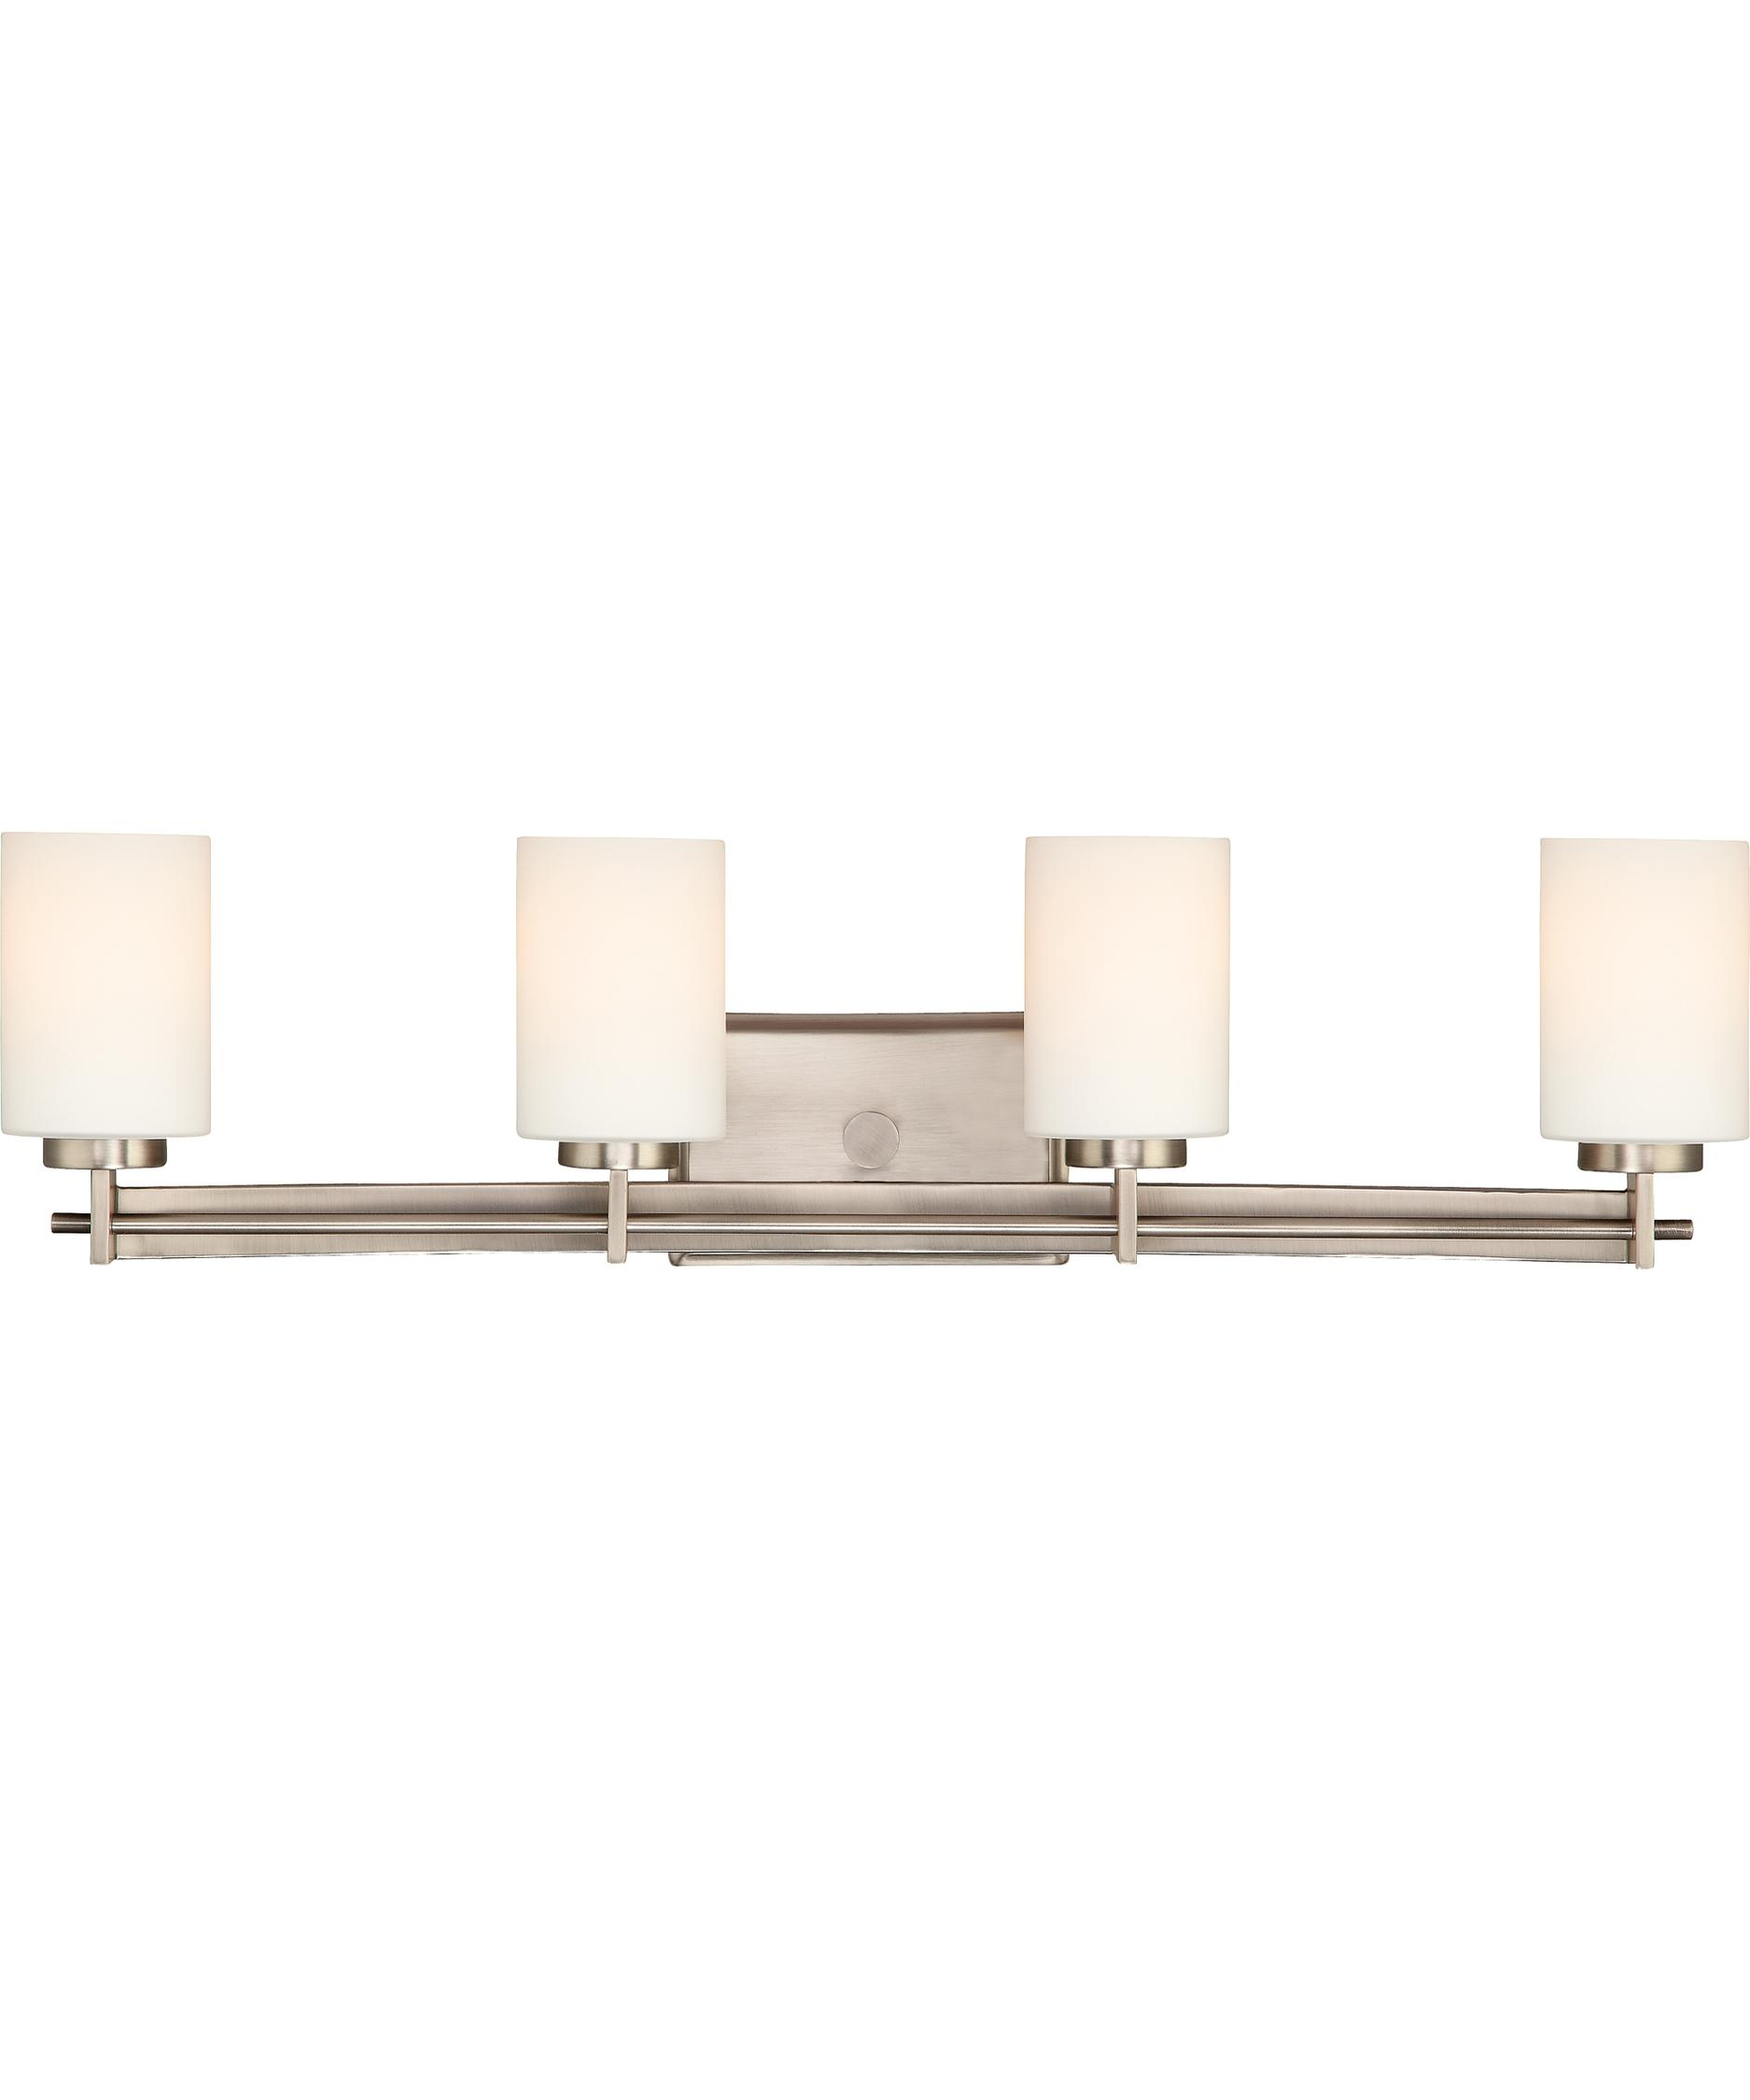 Quoizel Vanity Lights : Quoizel Taylor 30 Inch Bath Vanity Light Capitol Lighting 1-800lighting.com